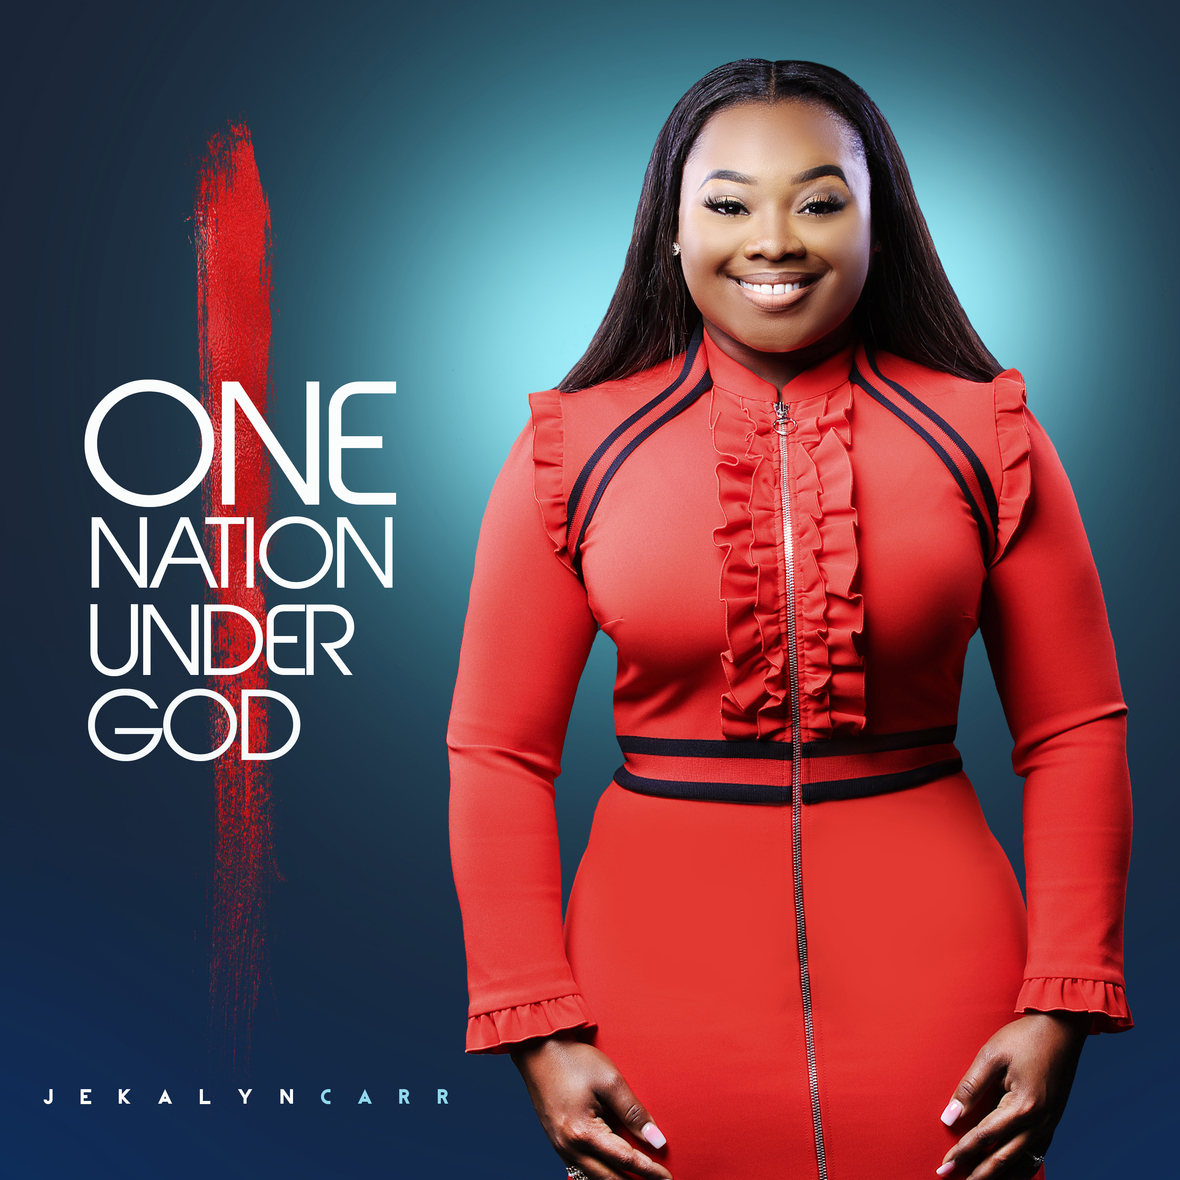 JC One Nation Under God album cover